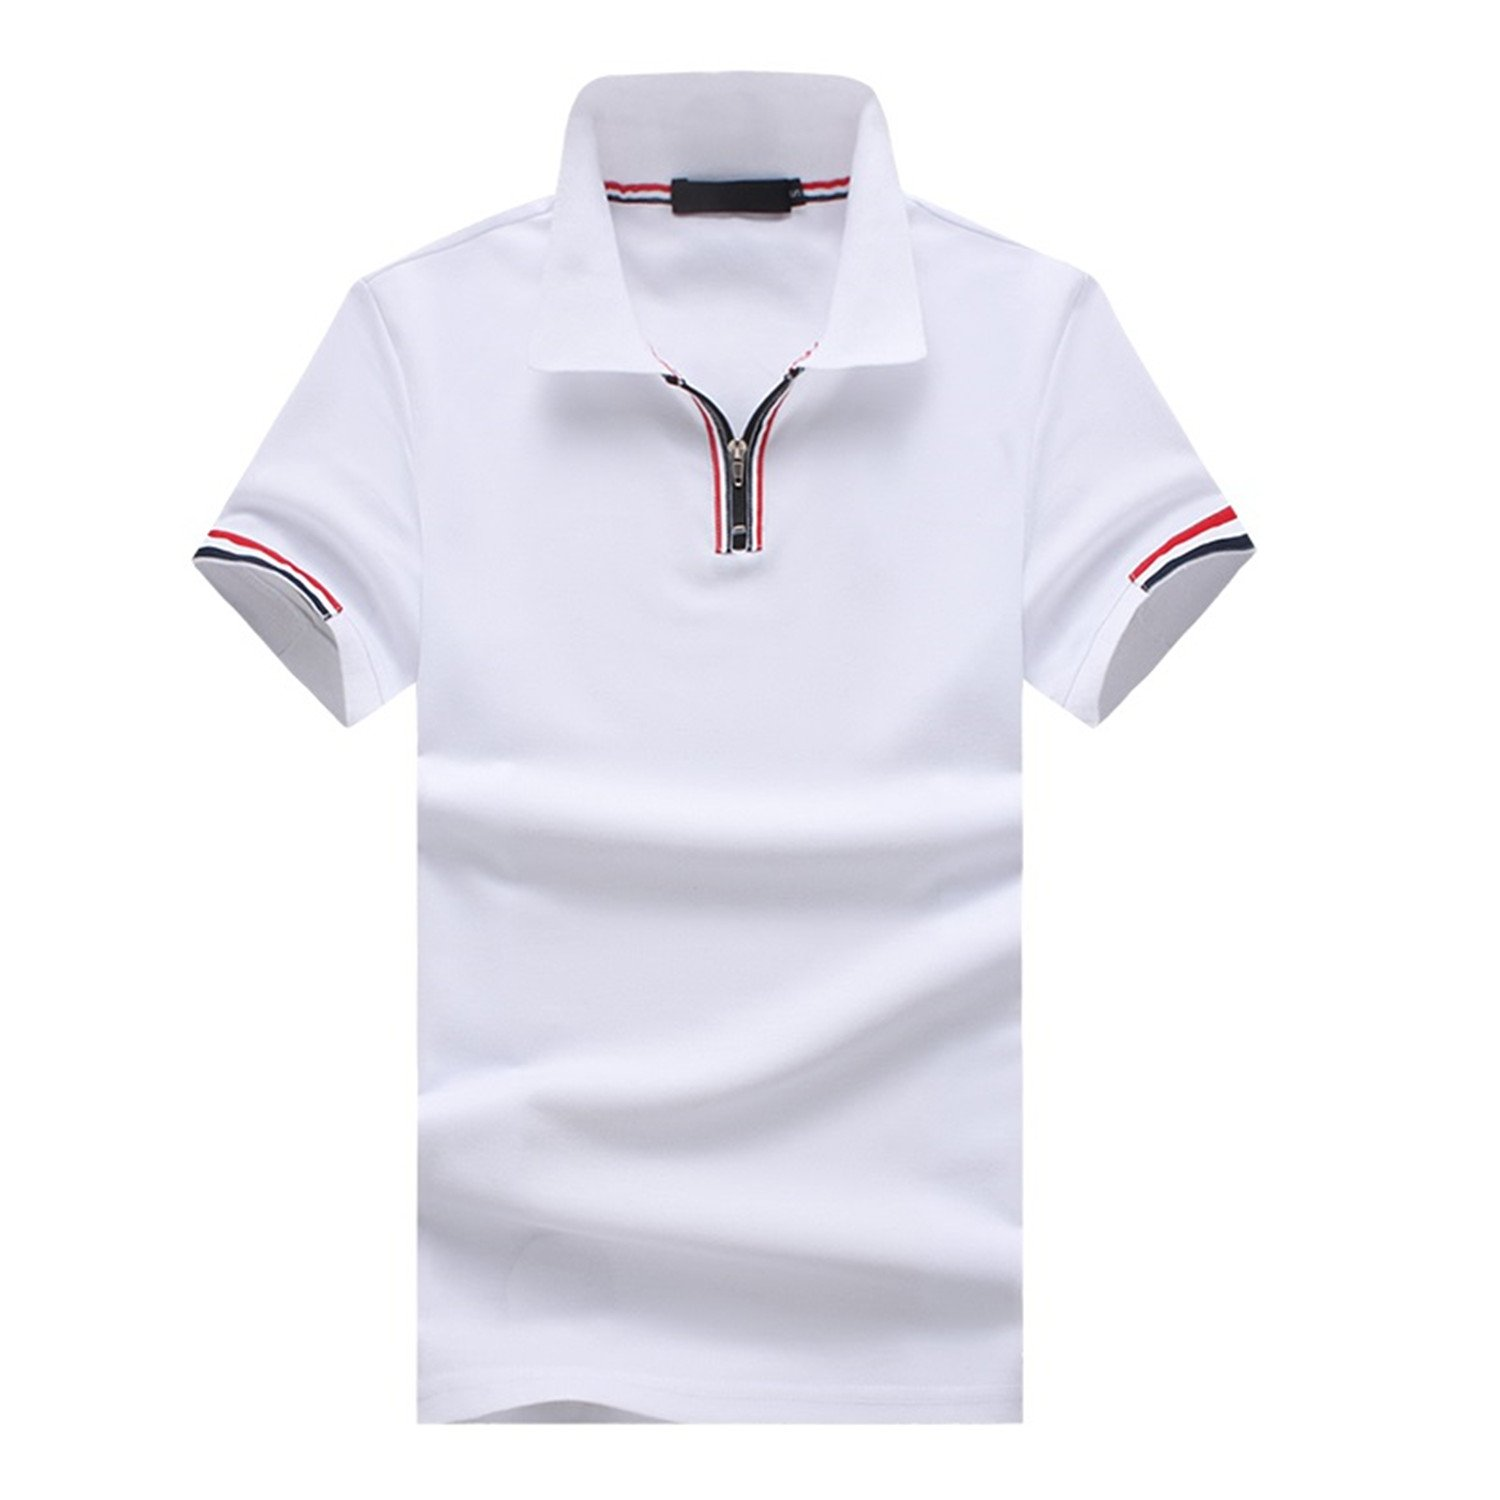 Giles Abbot Summer Fashion Polo Shirt Men Solid Color Zipper British Style Short Sleeve Casual Polos Brand Clothing